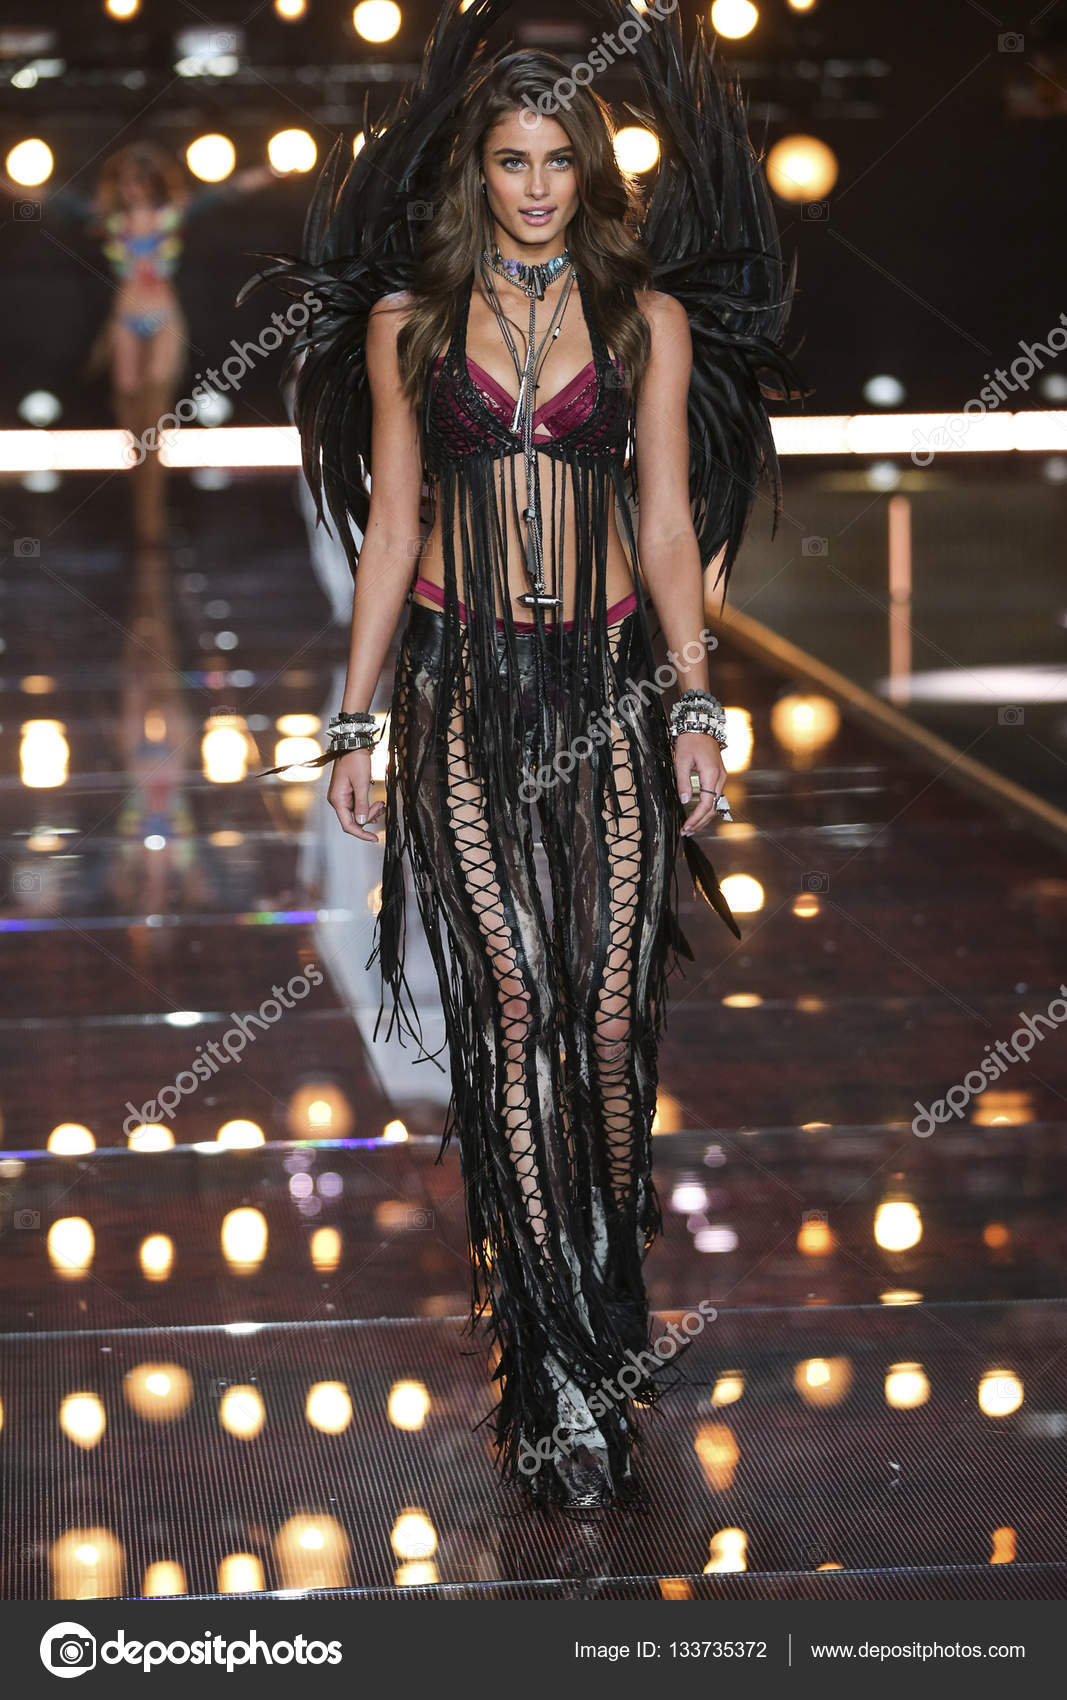 Victoria Secret Espagne Malaga victoria's secret fashion show – stock editorial photo